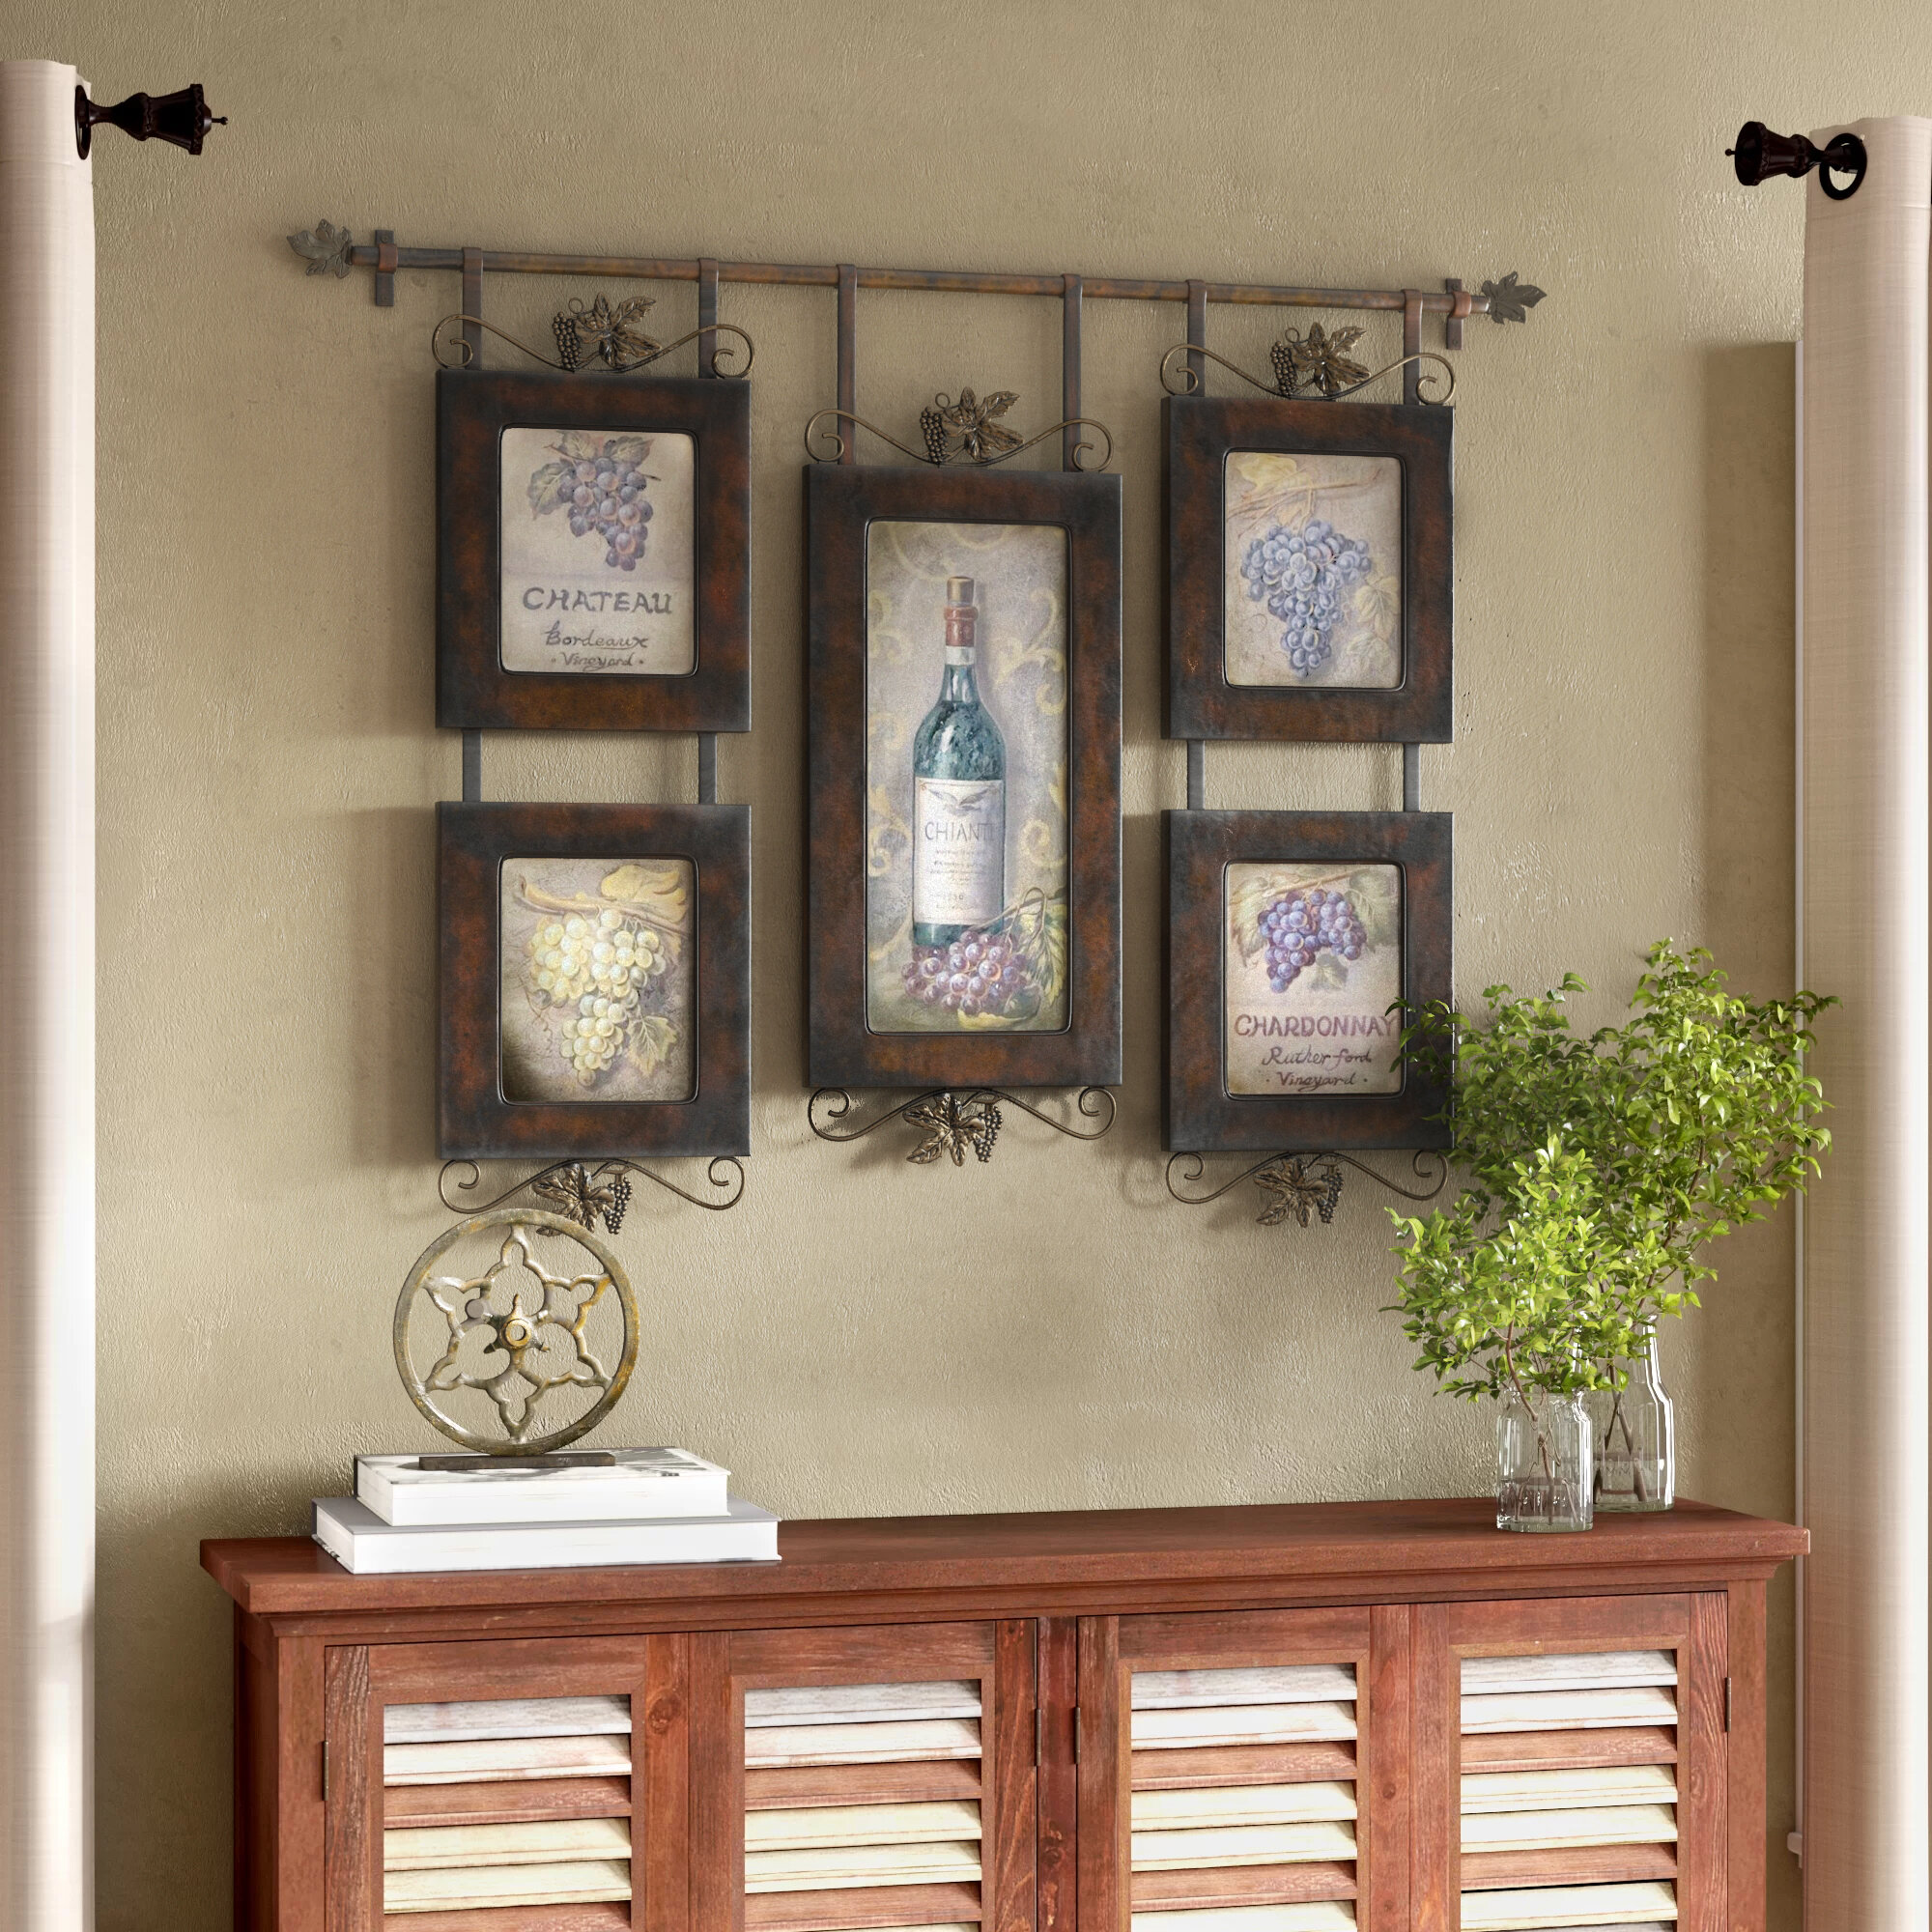 Darby Home Co Hanging Wine Wall Decor Reviews Wayfair